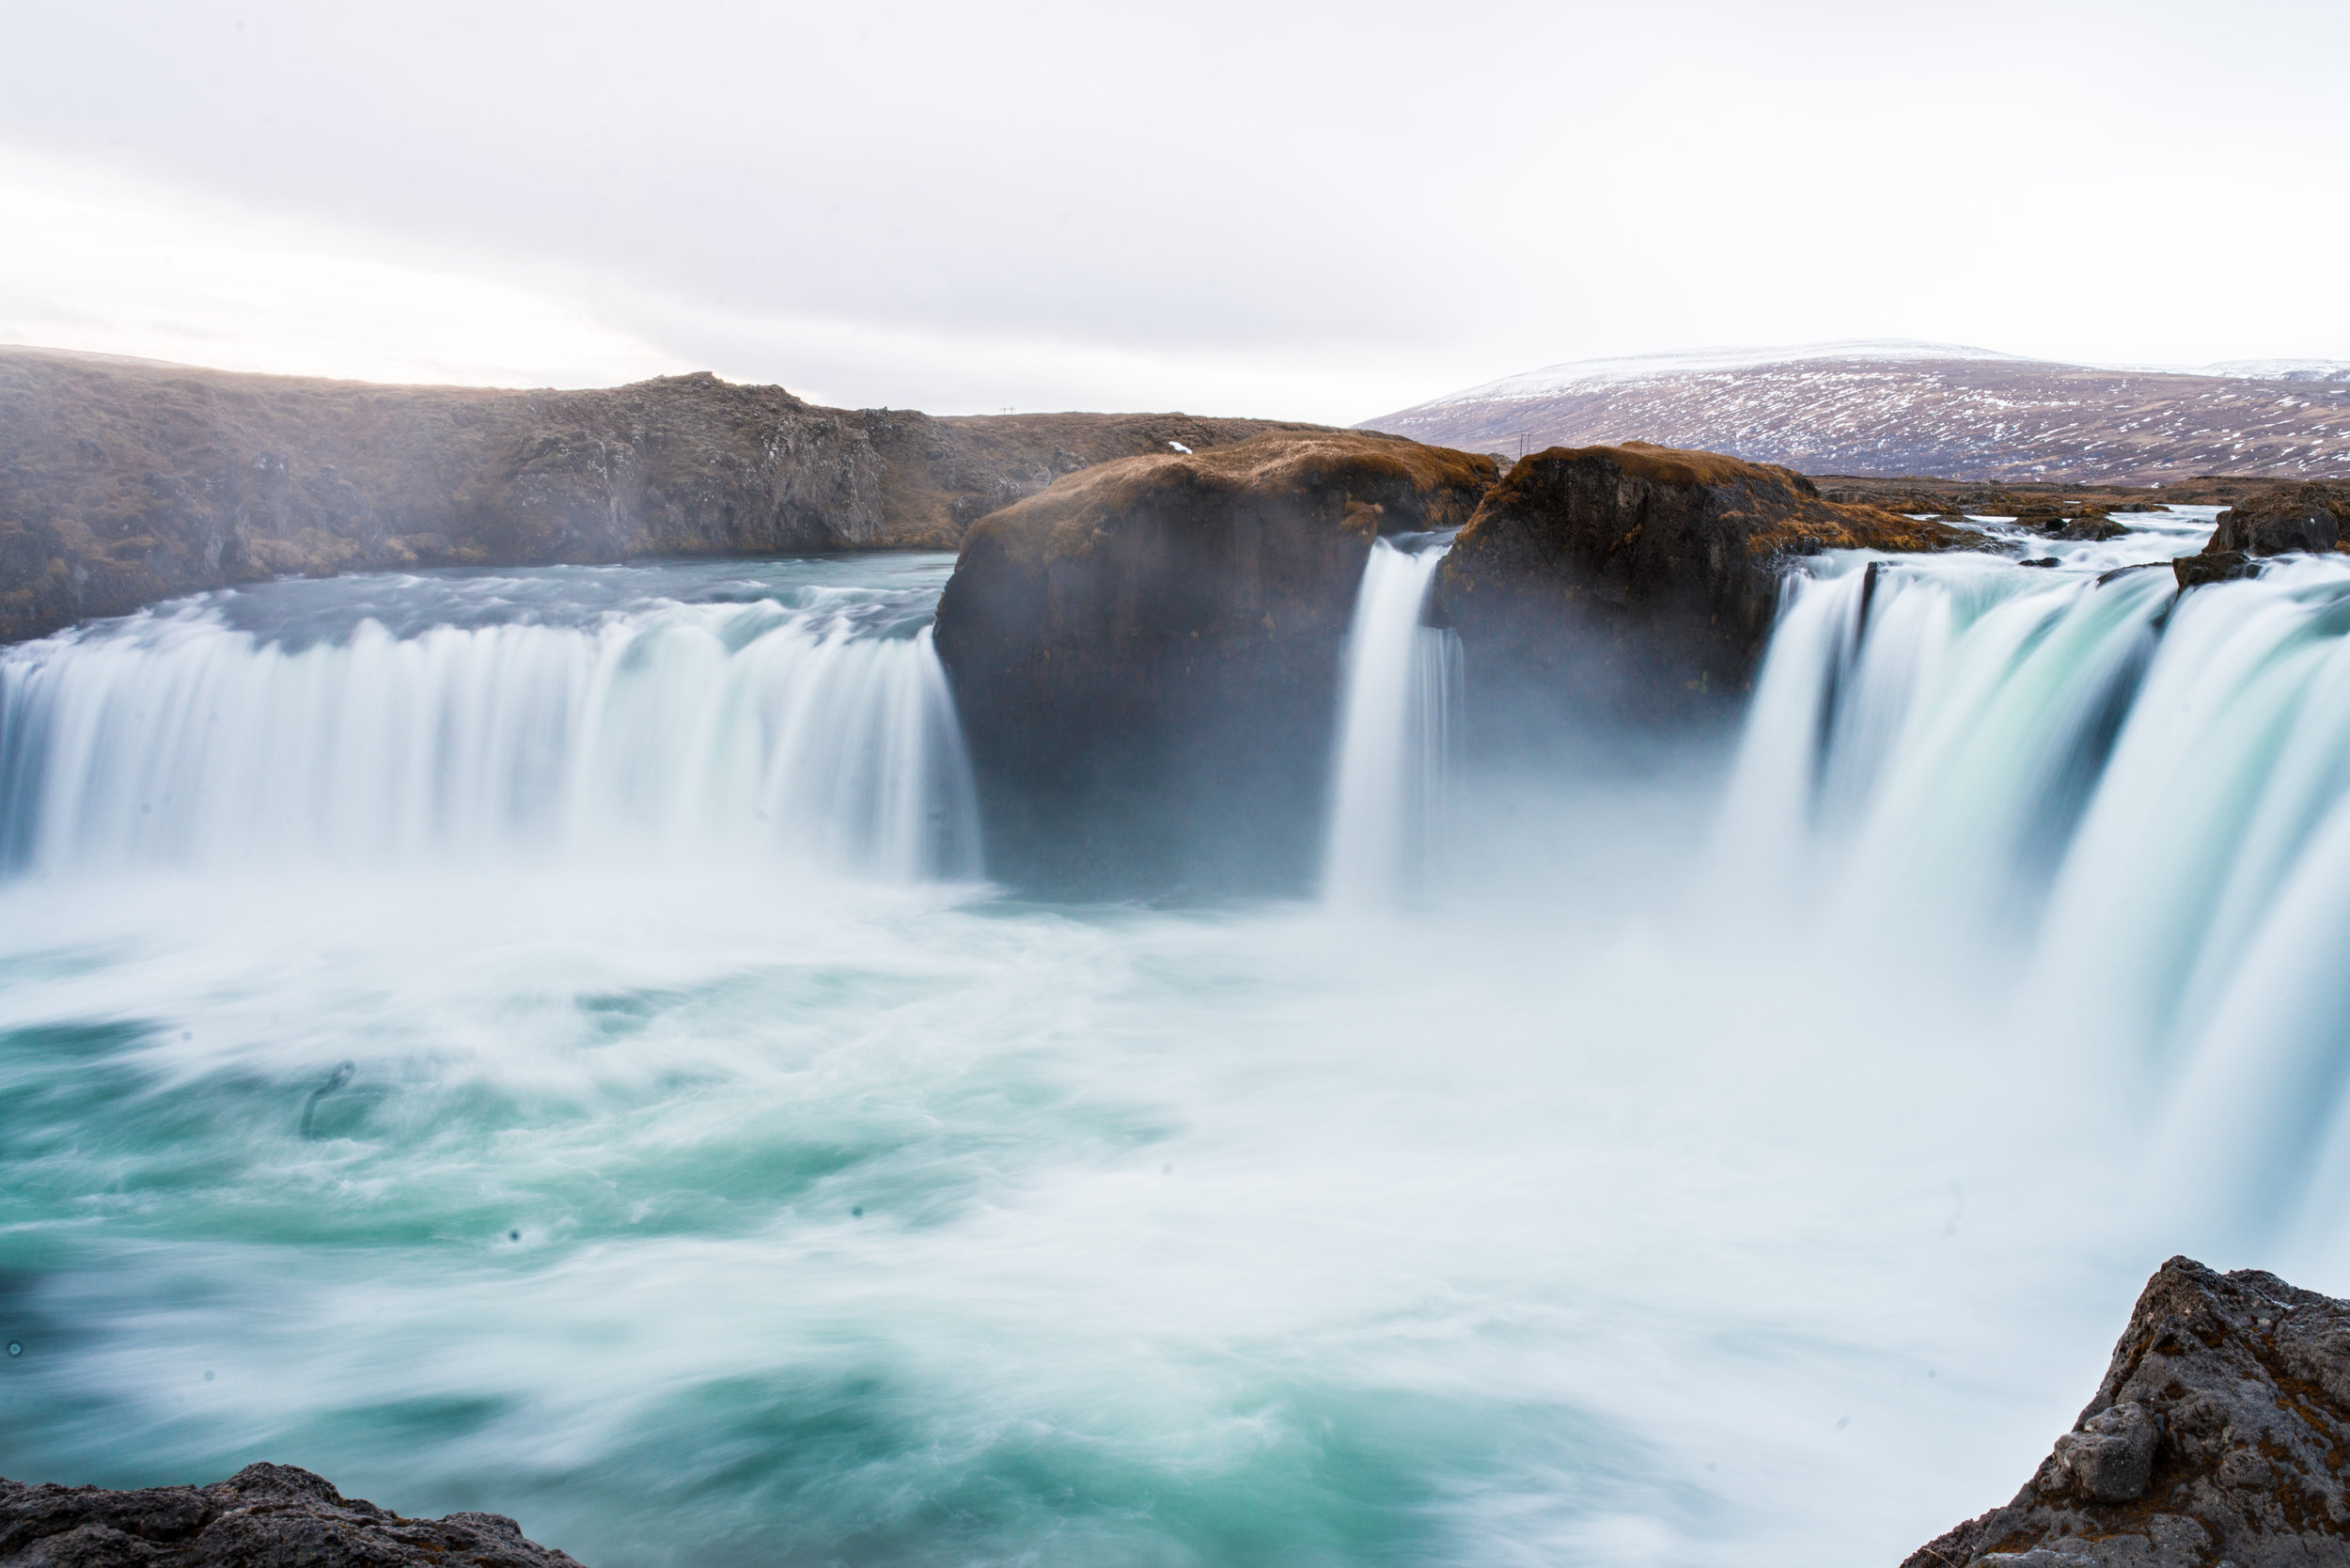 THE WATERFALL OF THE GODS